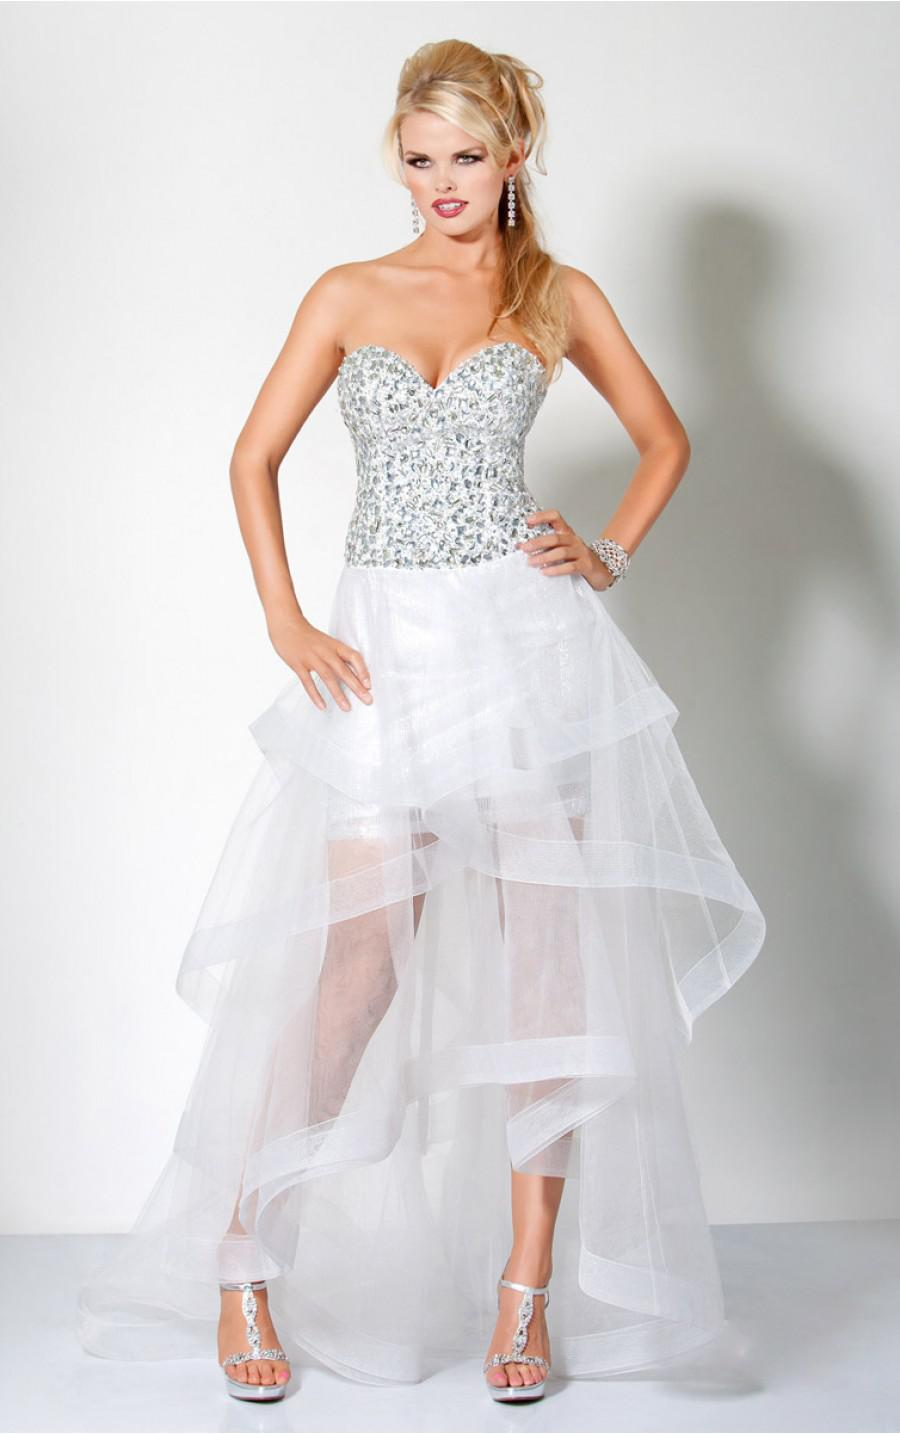 Sweetheart Short White Prom Dresses Rhinestone Lace Up Organza Party ...